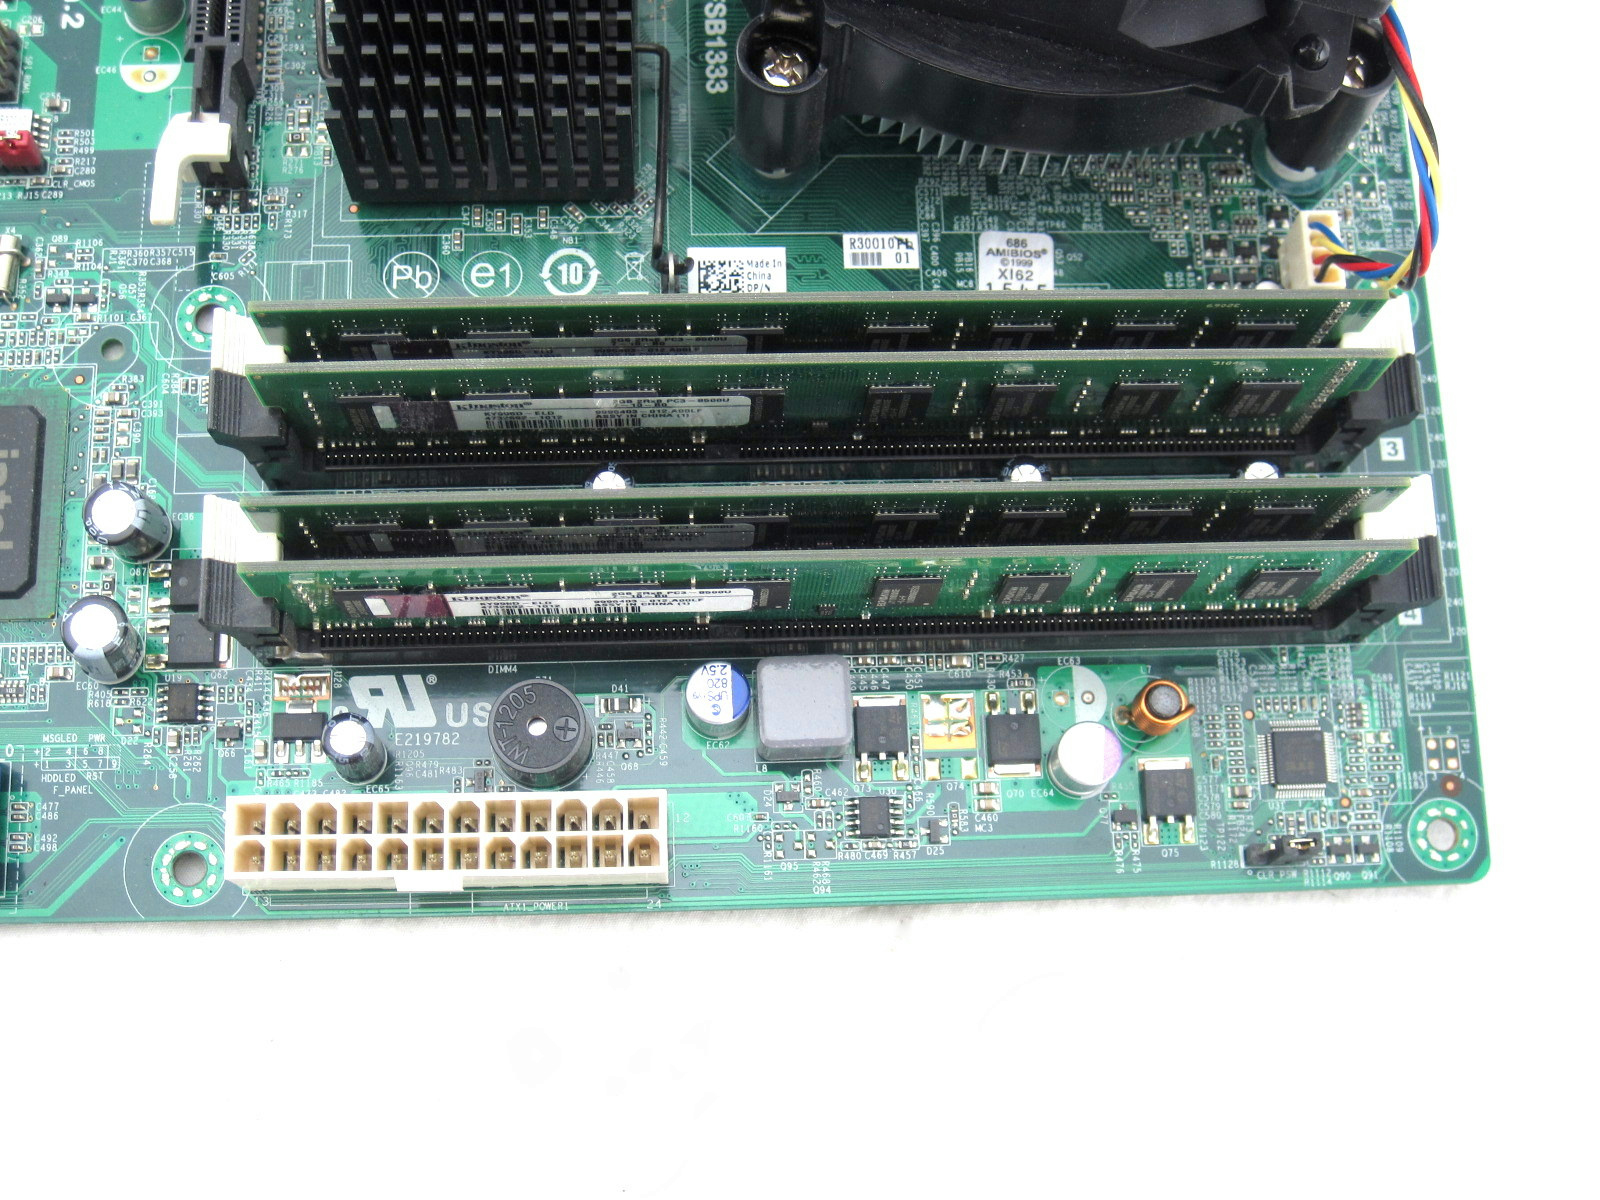 Dell Inspiron 560 Motherboard Slots Luton Poker Tournament Schedule 530 Wiring Diagram System Information 1st Choice Memory